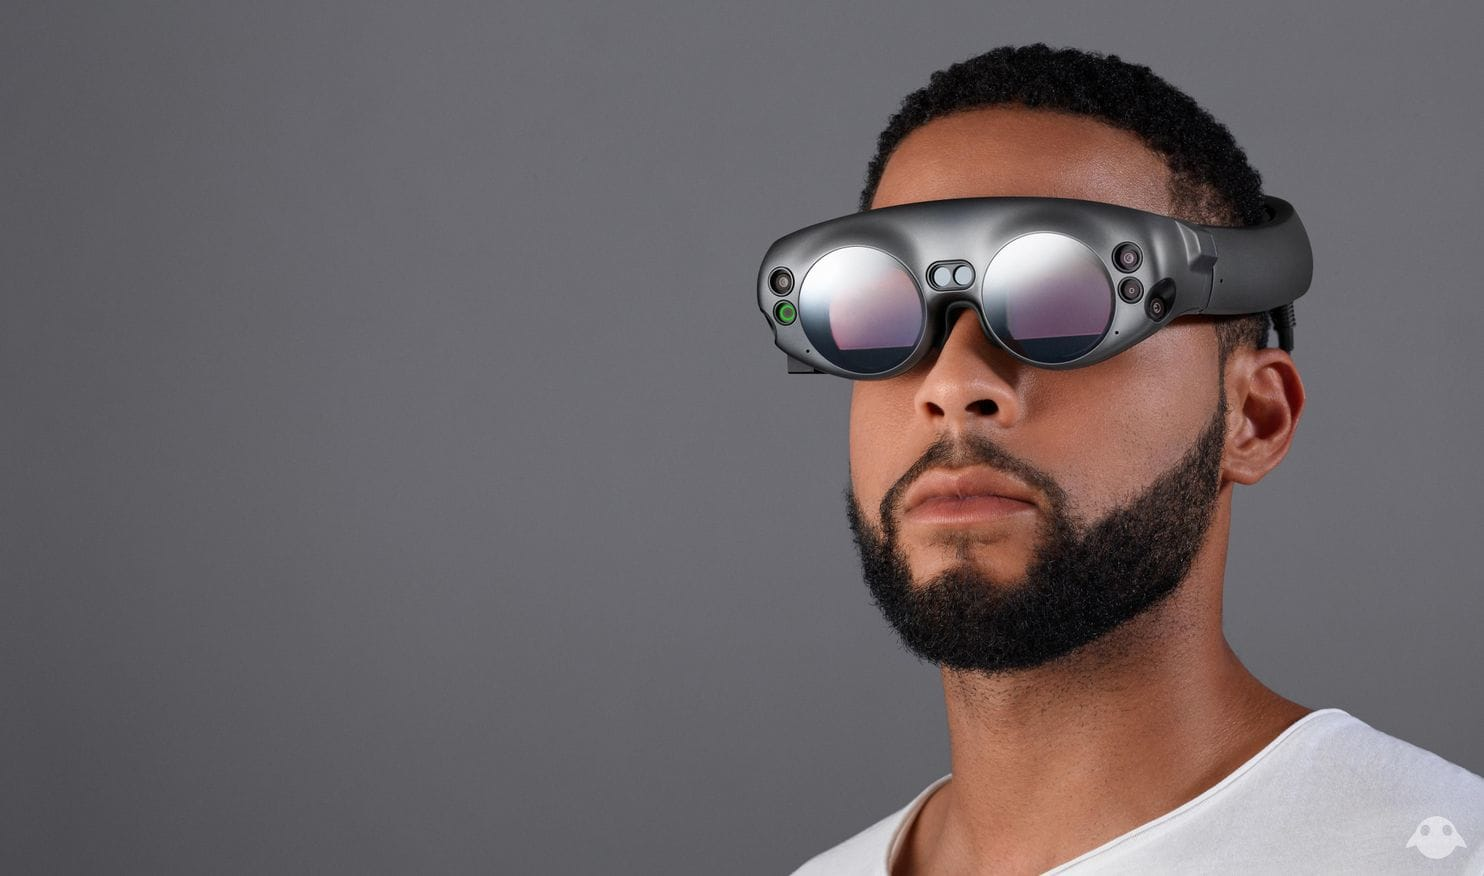 The Magic Leap One headgear is due to ship to developers later this year. (Courtesy of Magic Leap)